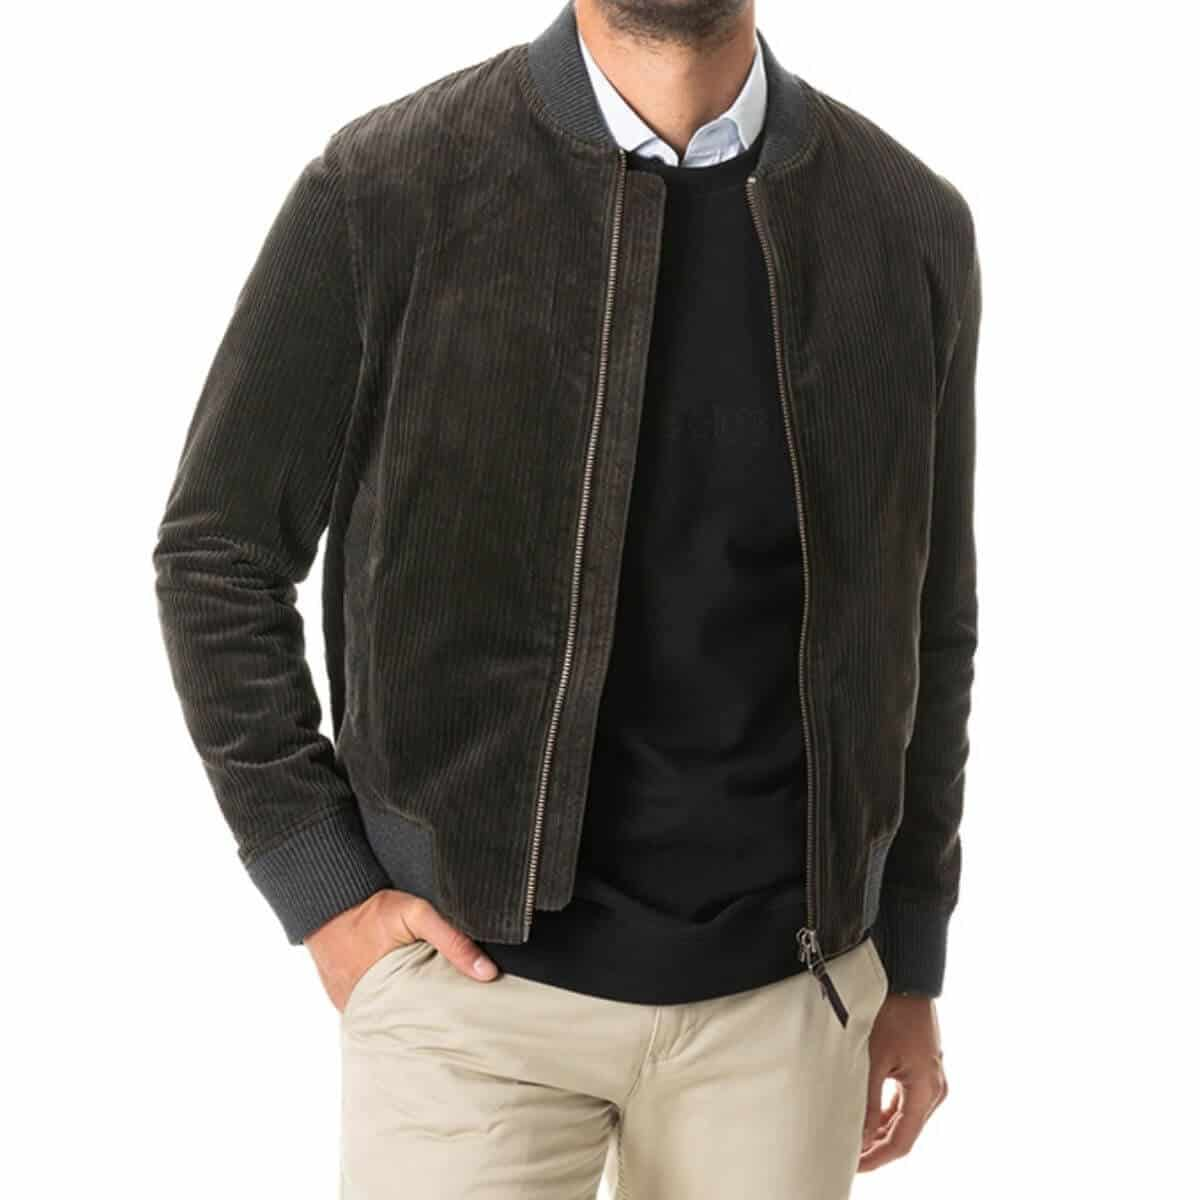 Close-up of a person wearing a corduroy bomber jacket with khaki pants.